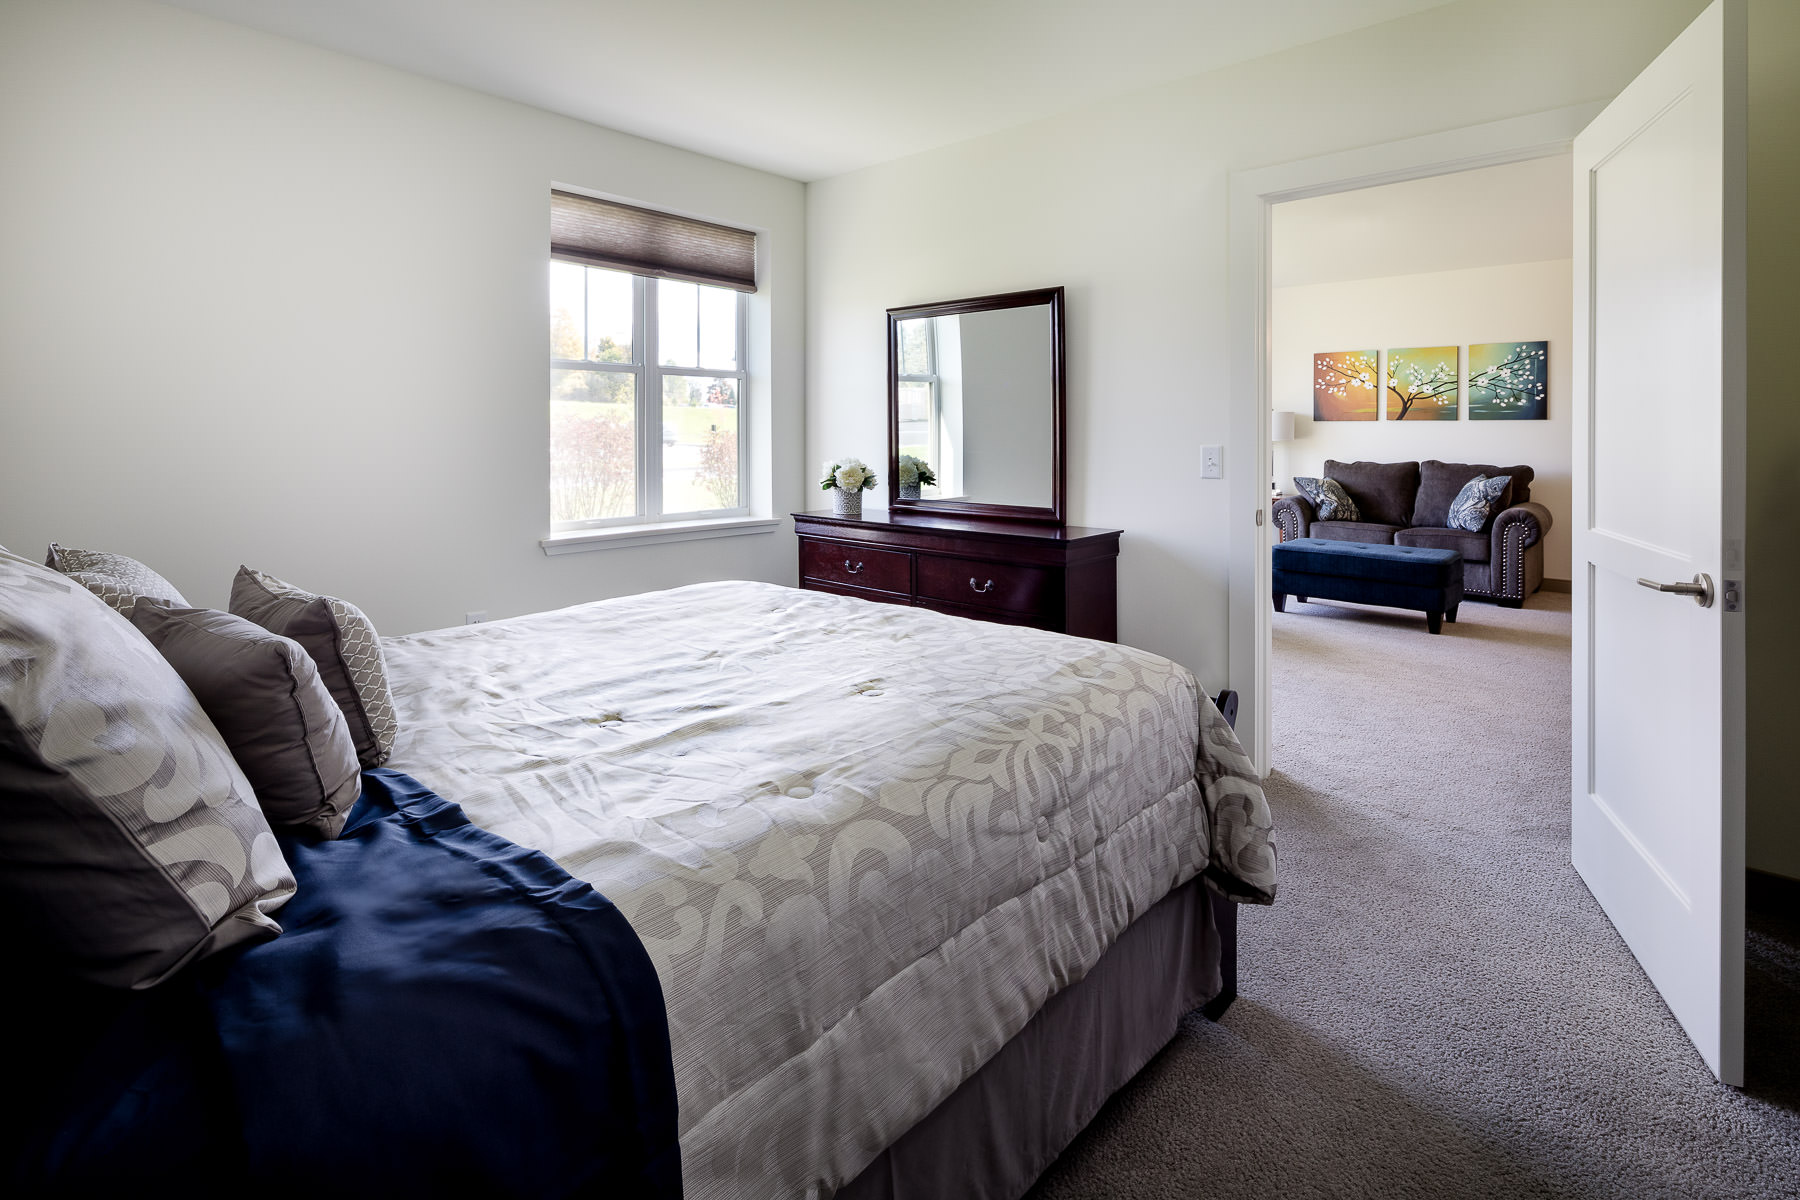 A single bedroom unit in the Strode Independent Living Facility in Randolph by Vermont commercial photographer Stina Booth